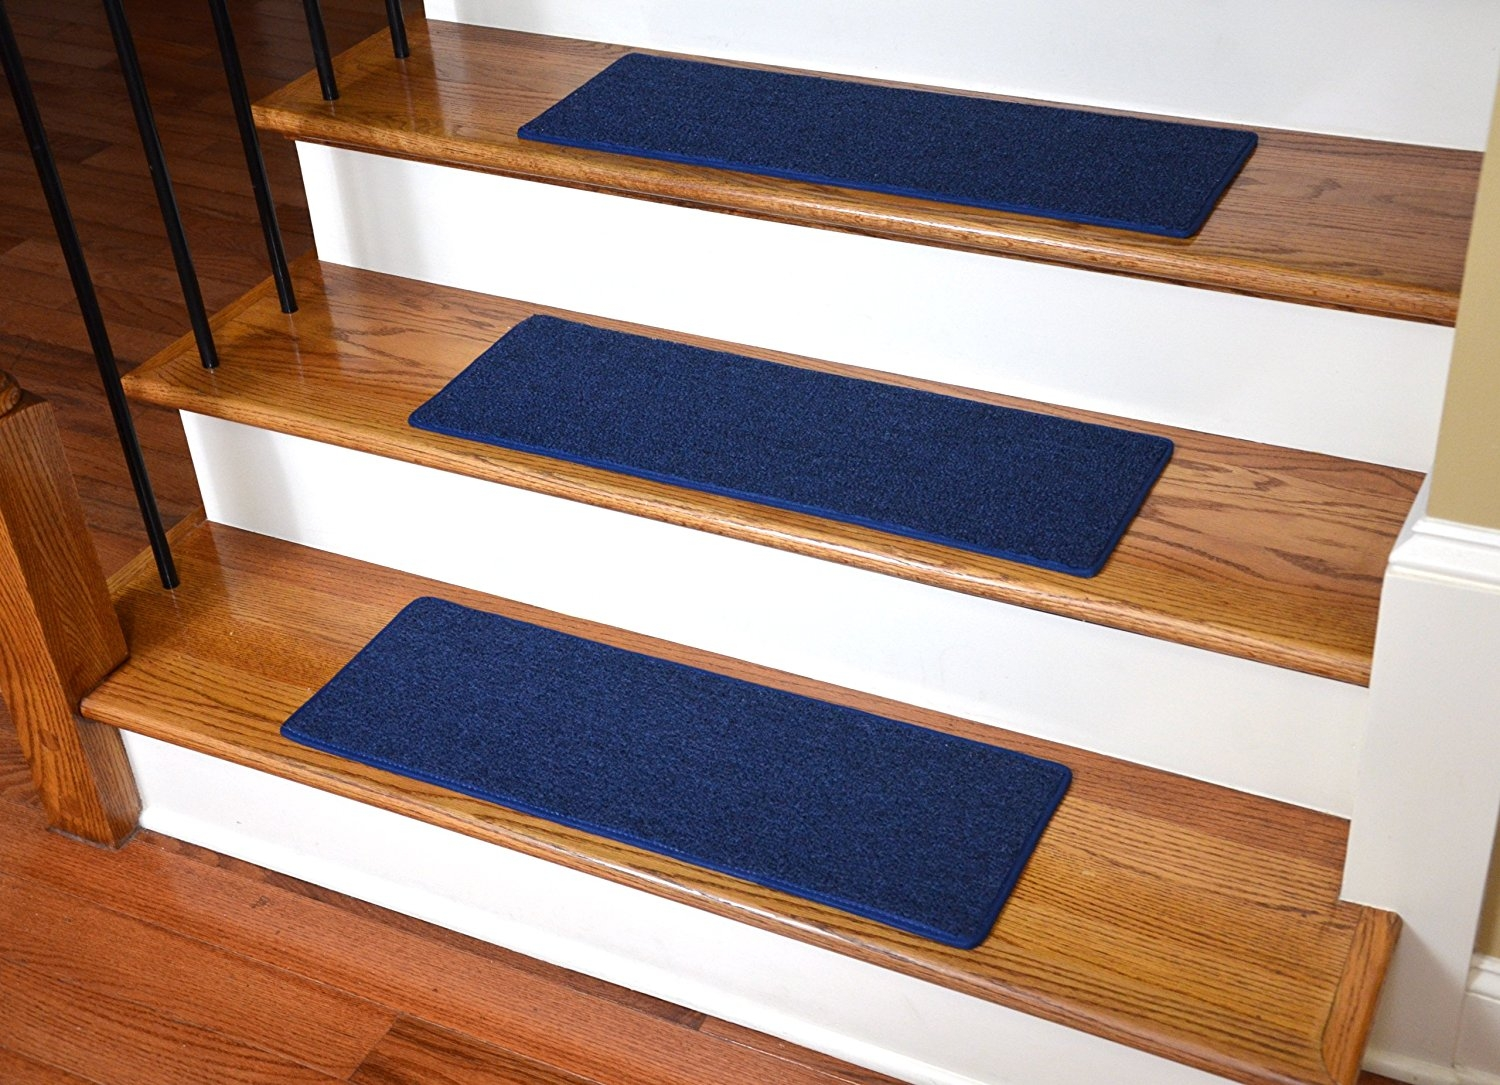 Dean Carpet Stair Treads 23 X 8 Navy Blue Set Of 13 Home Inside 8 Inch Stair Tread Rugs (#9 of 20)